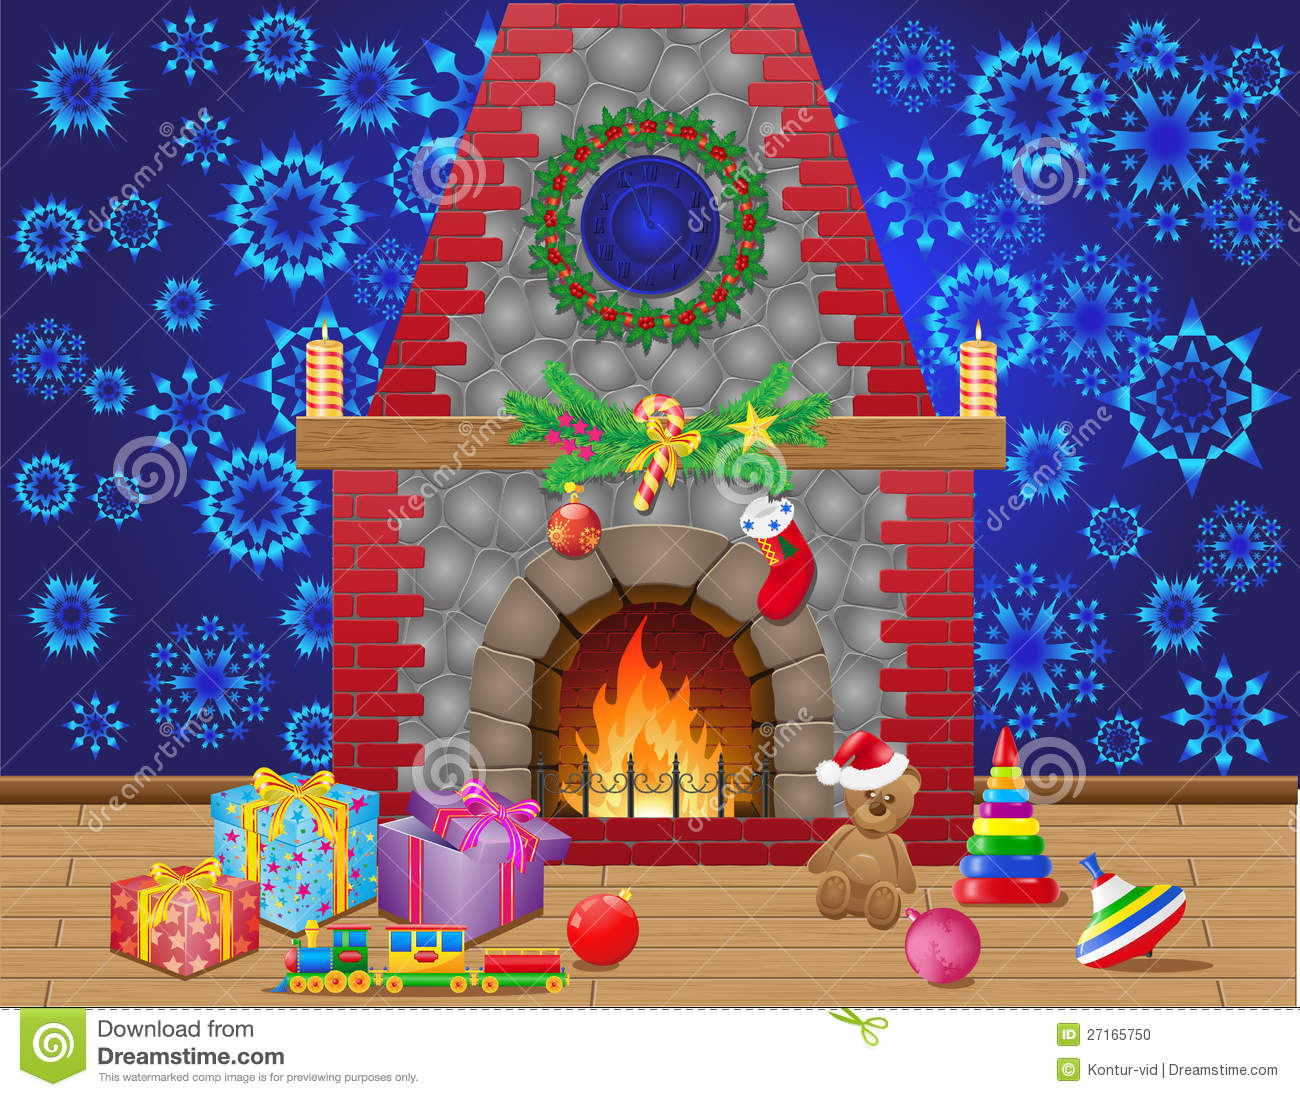 Christmas Room Stock Vector Image Of Illuminated: Fireplace Room With Christmas Gifts Stock Vector